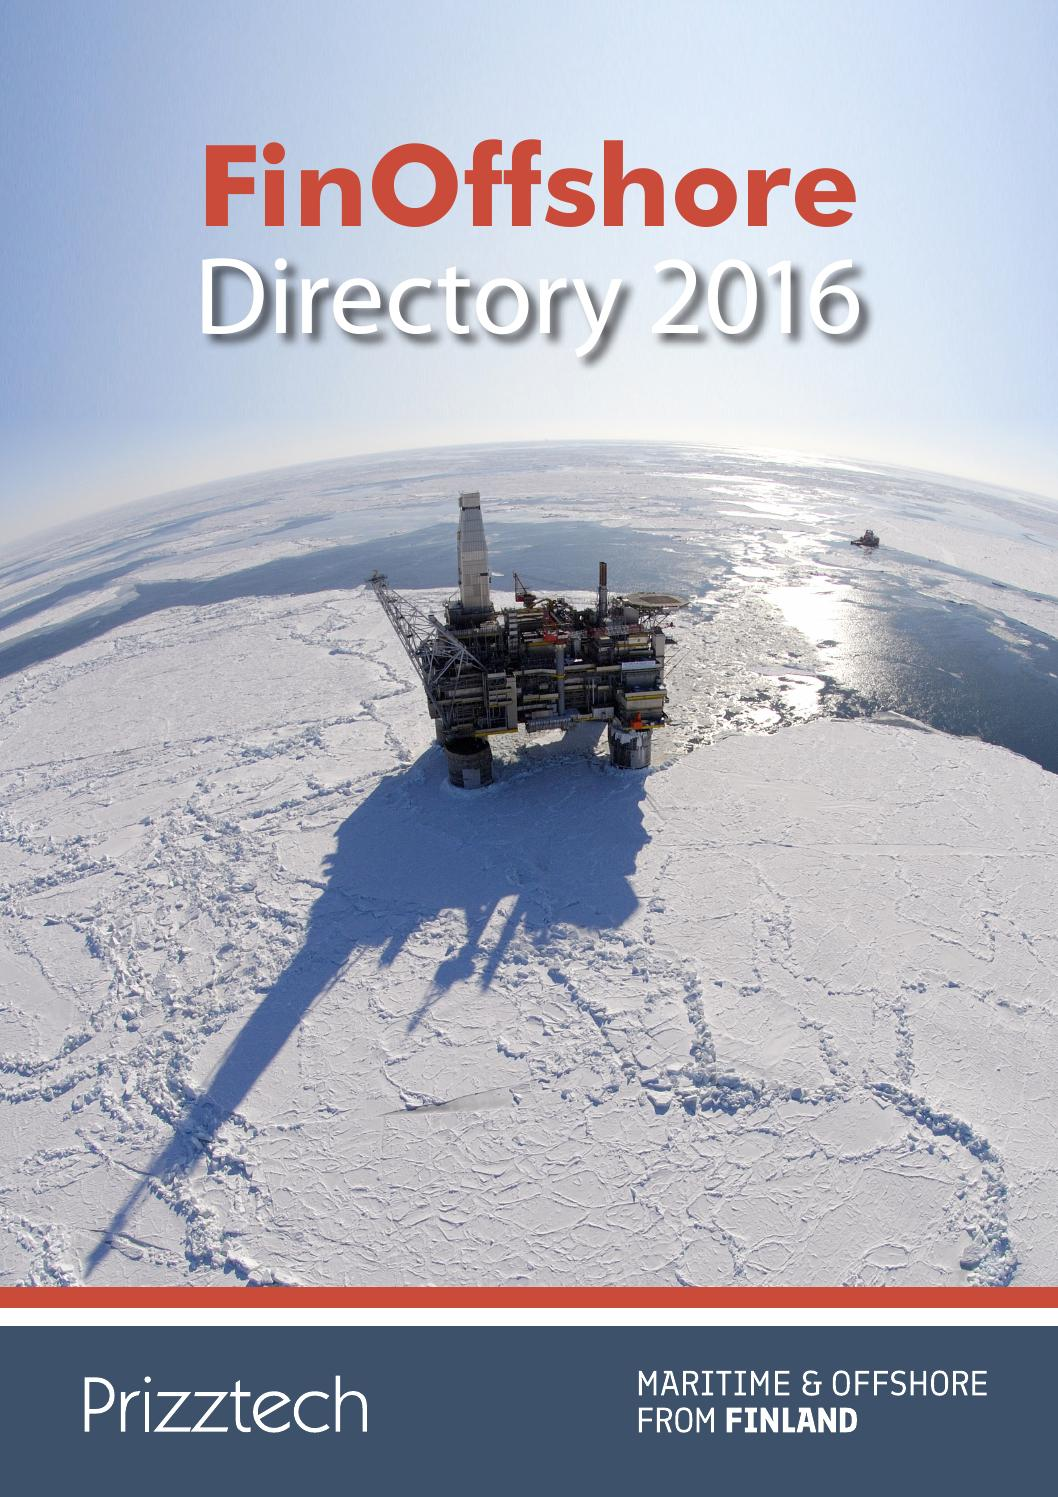 FinOffshore Directory 2016 by Prizztech Oy - issuu